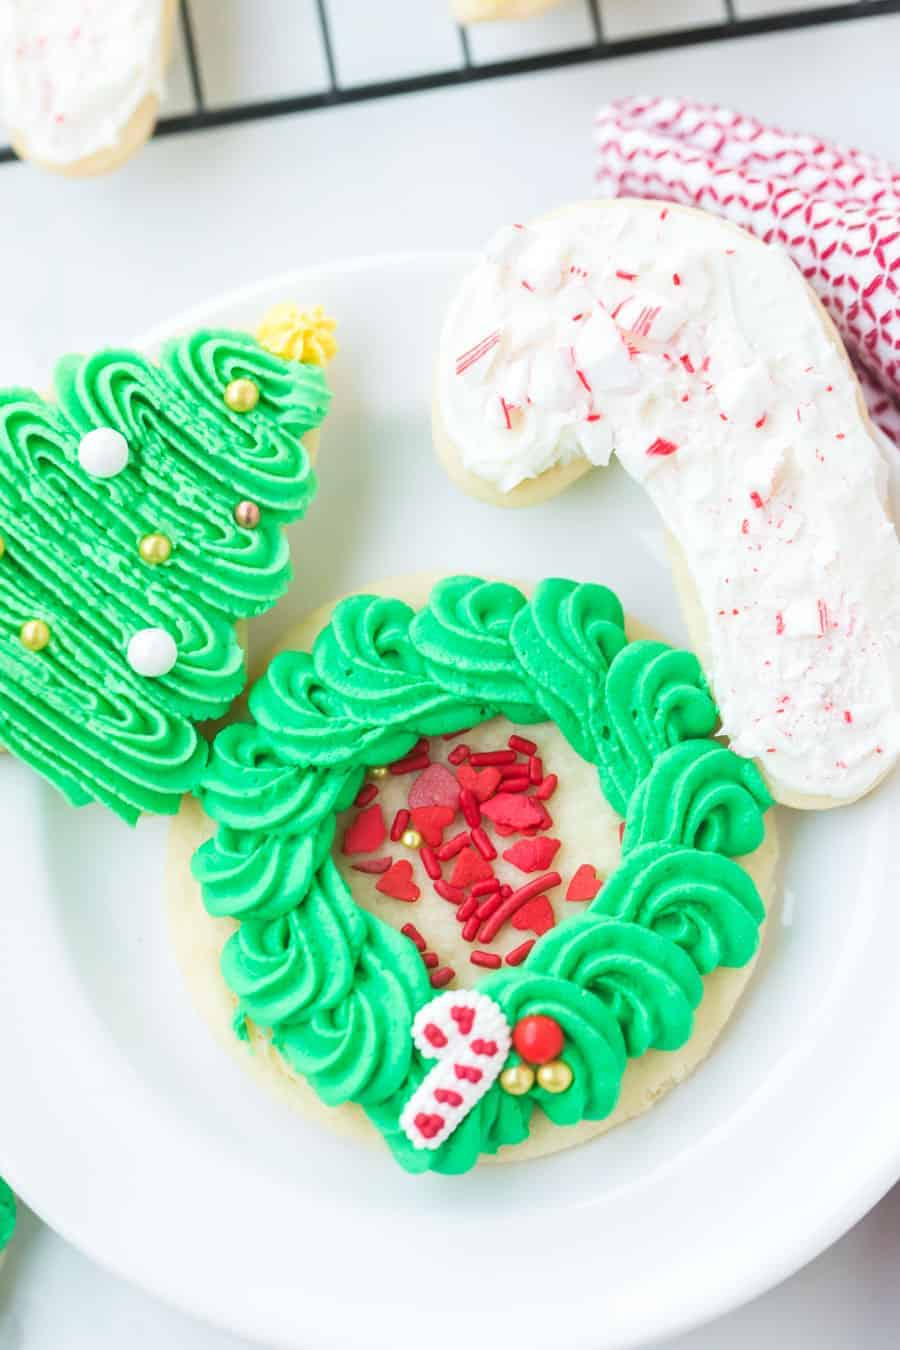 These perfect sugar cookies are moist and soft but keep their shape well, and are perfect for any holiday occasion! They're simple to make, too. Just make the dough, chill it, roll it, shape it, and bake it! And of course, don't forget to decorate it. #sugarcookies #sugarcookie #sugarcookierecipe #baking #cookies #cookierecipe #christmascookies